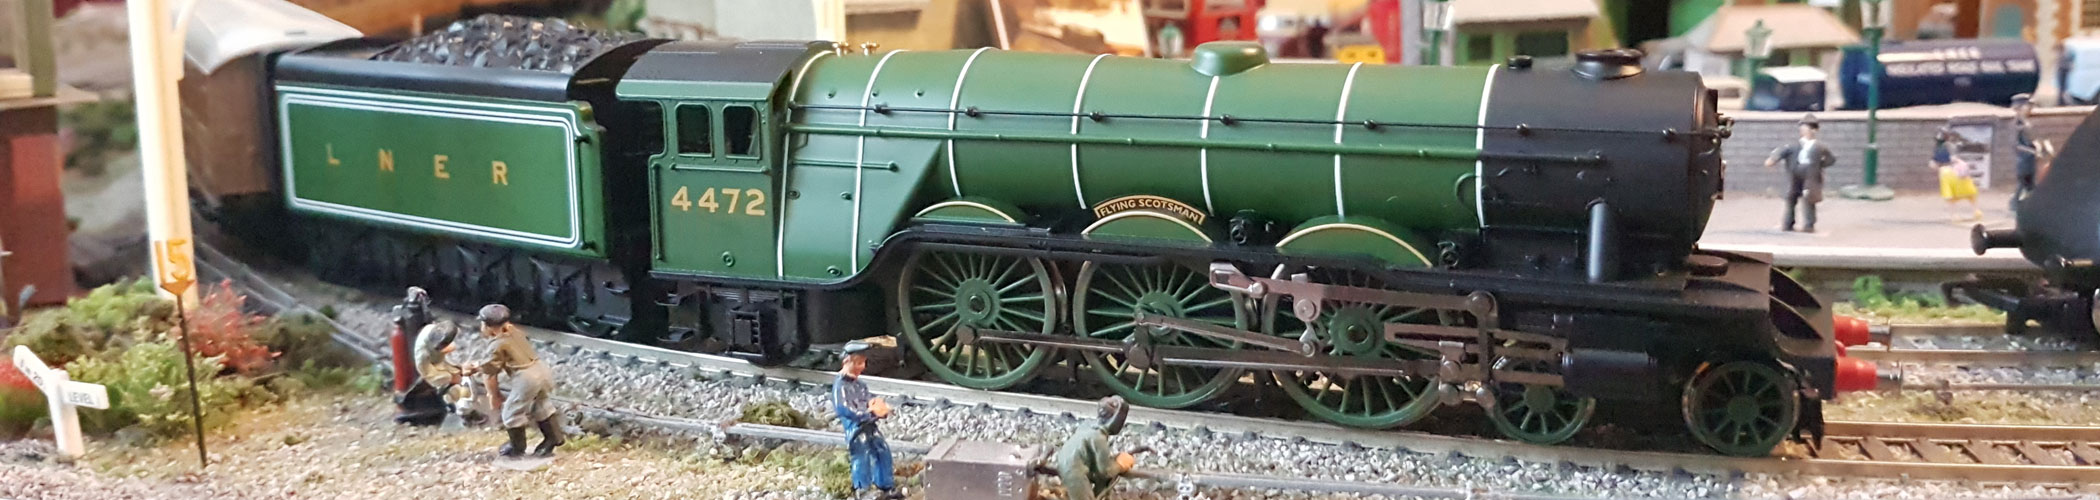 Basement Model Trains - Specialists in 'OO' and 'O' Gauge Model Railways by Bachman, Dapol, Hornby and Heljan